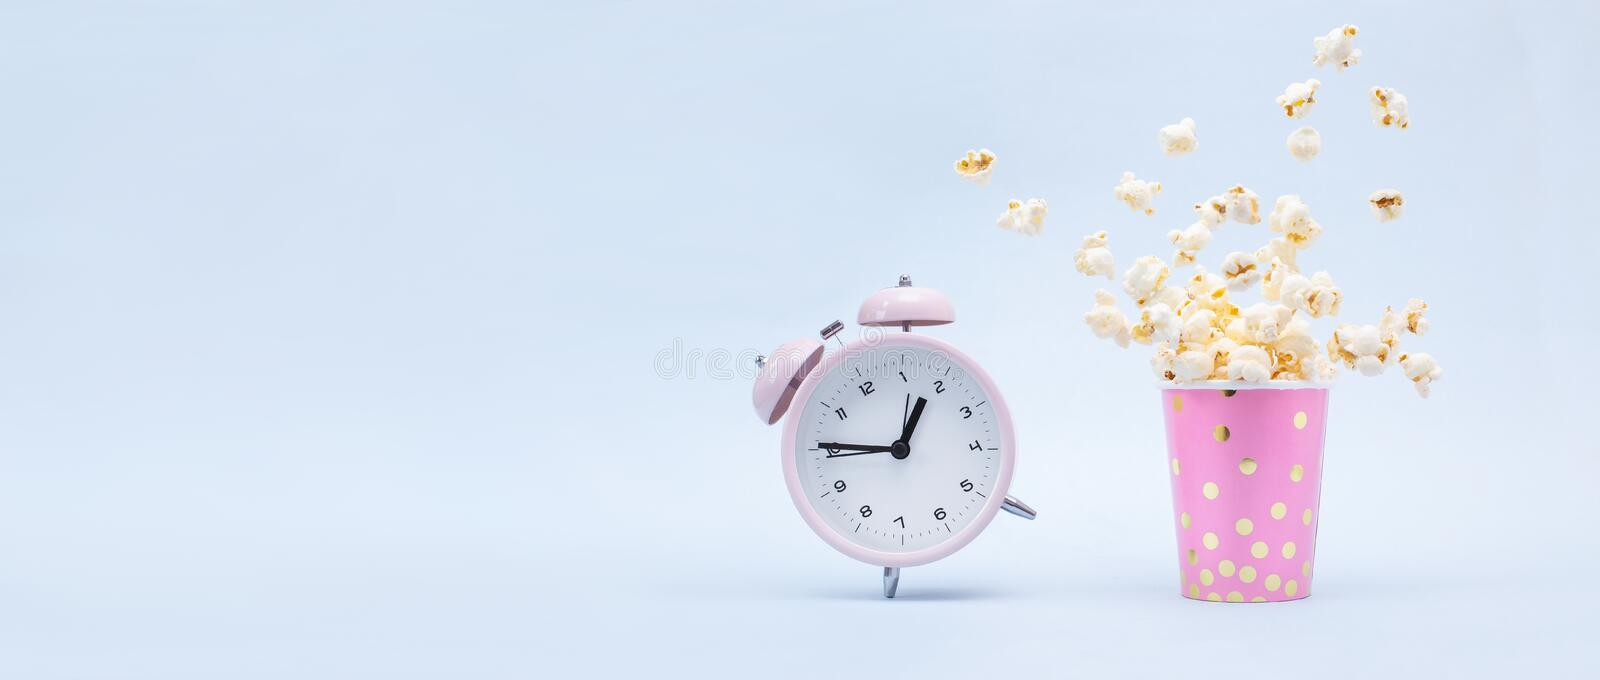 Flying Popcorn in a bright glass and a ringing alarm clock on a blue background. Time for a fun concept stock photos